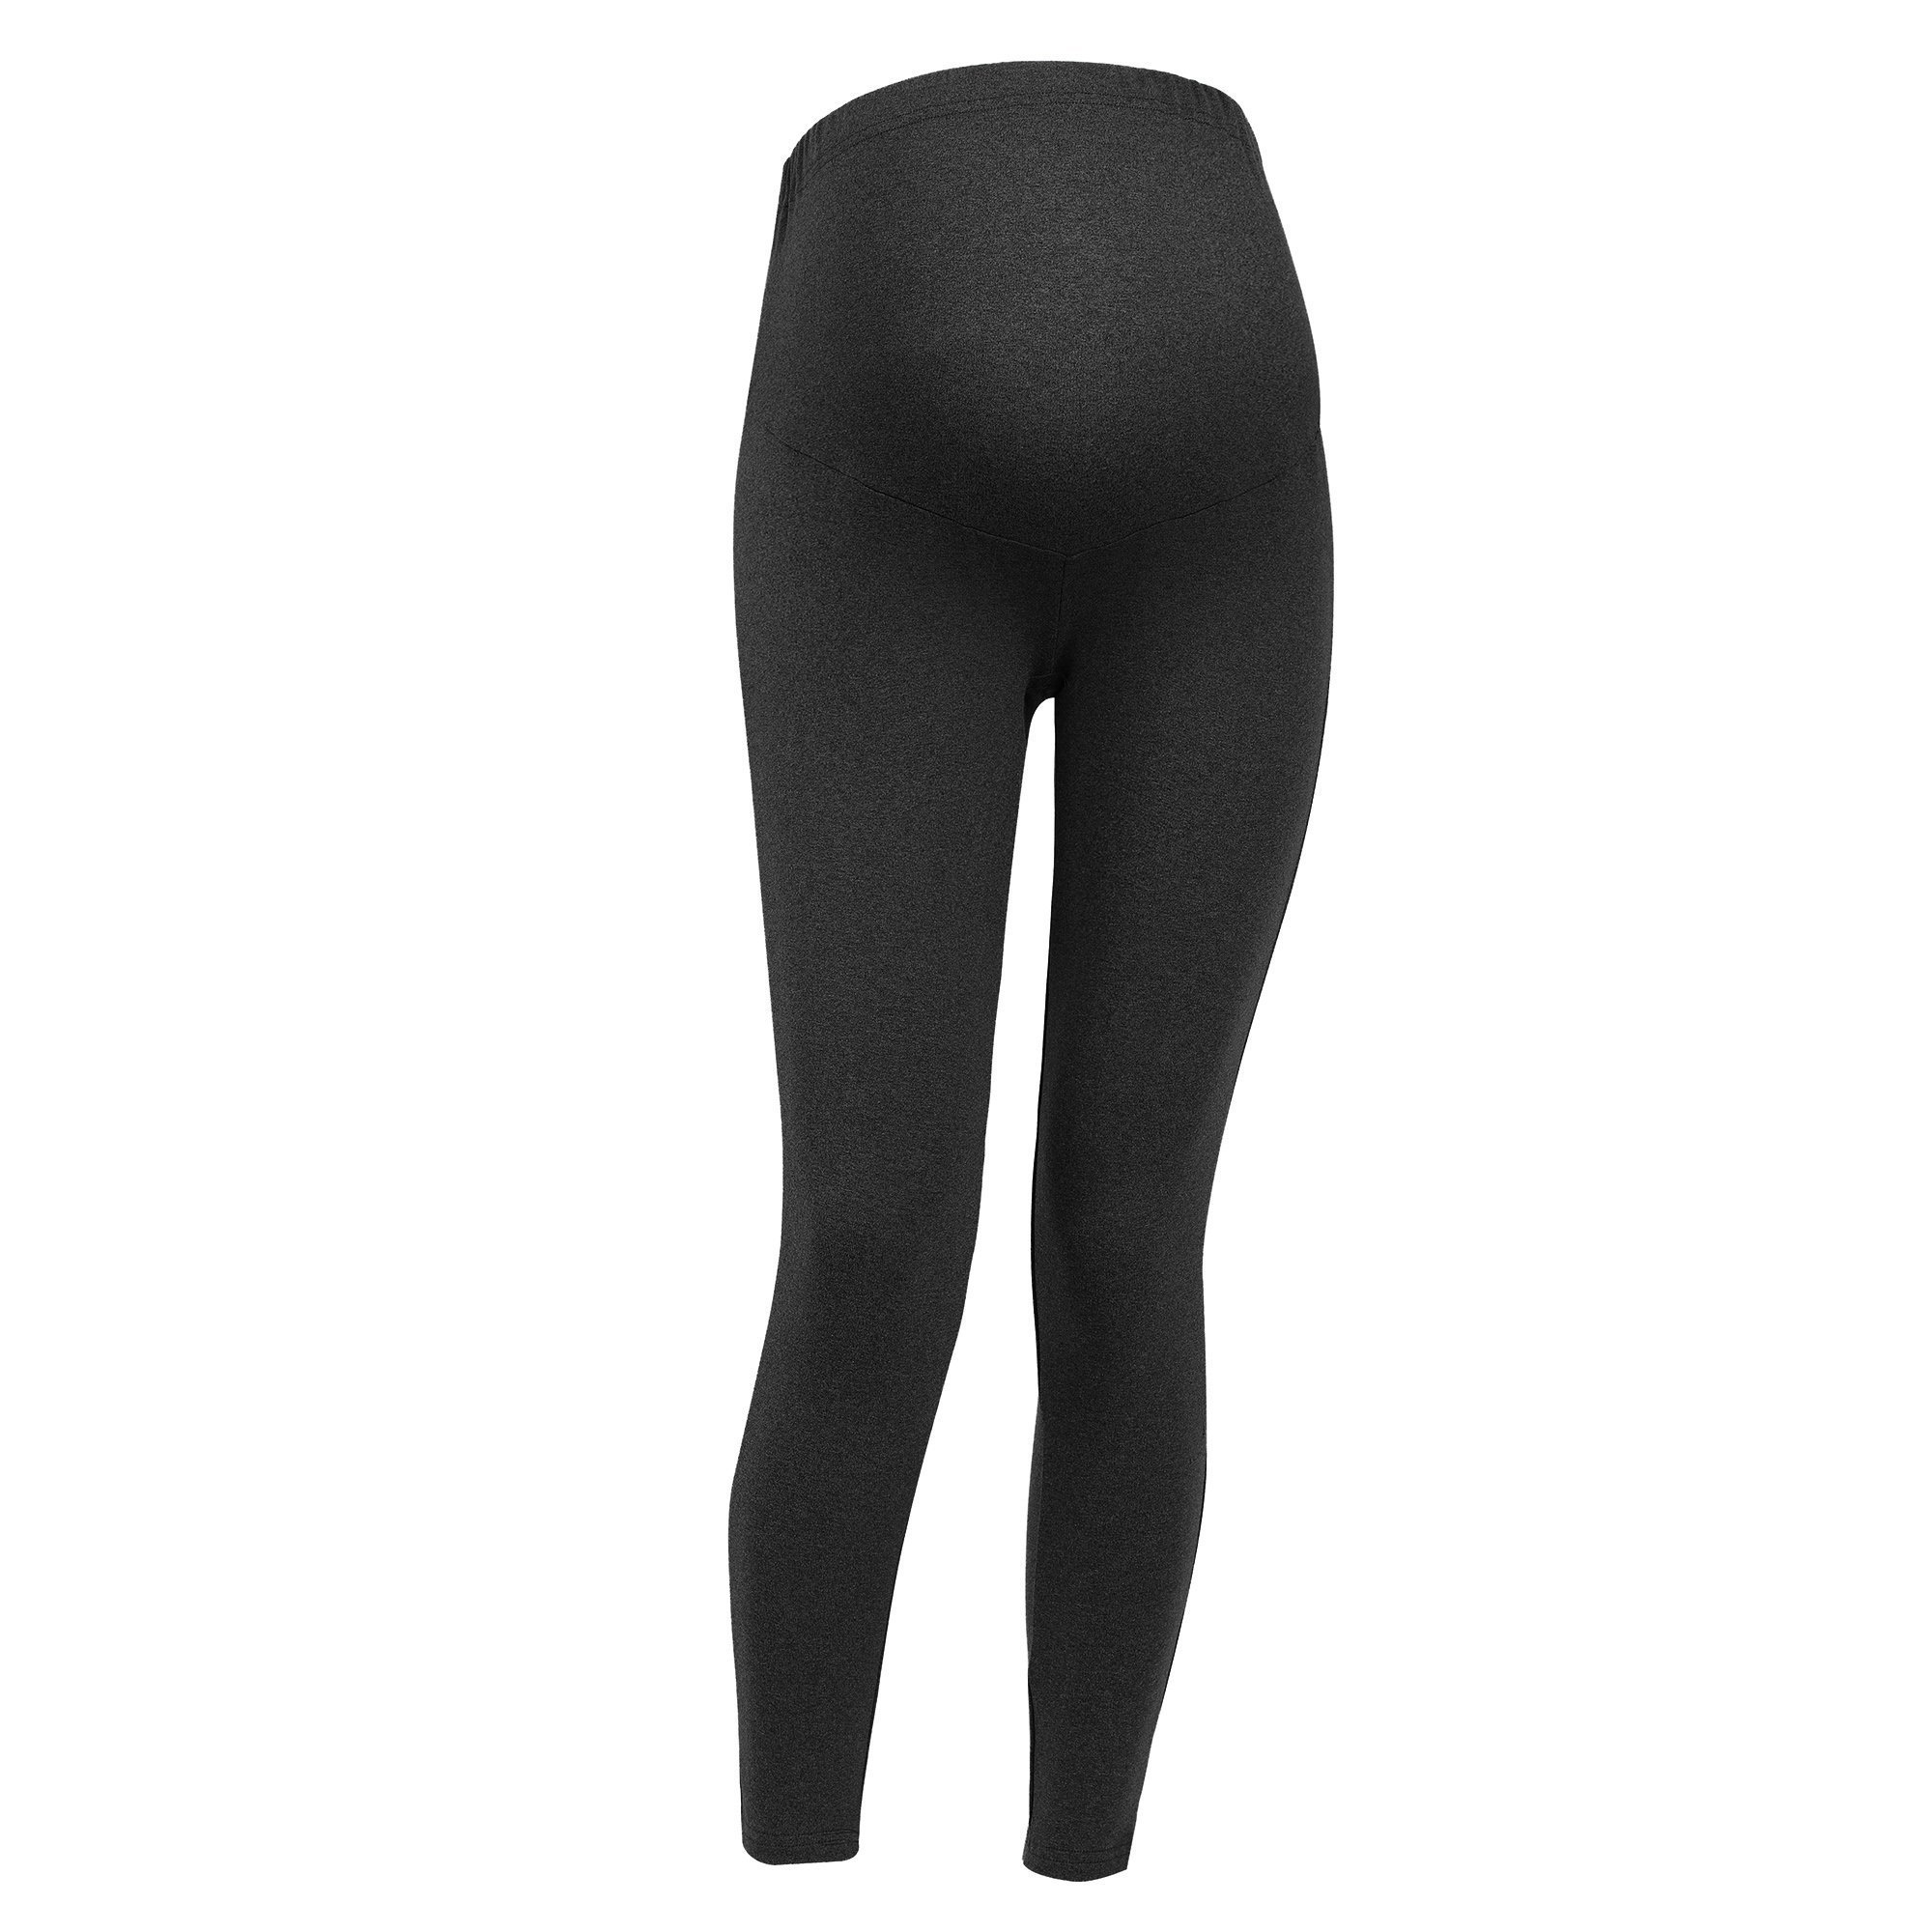 CIIMM Women High Waist Elastic Maternity Leggings Capri Maternity Ankle Skinny Pant Belly Pants with Soft Support Texture